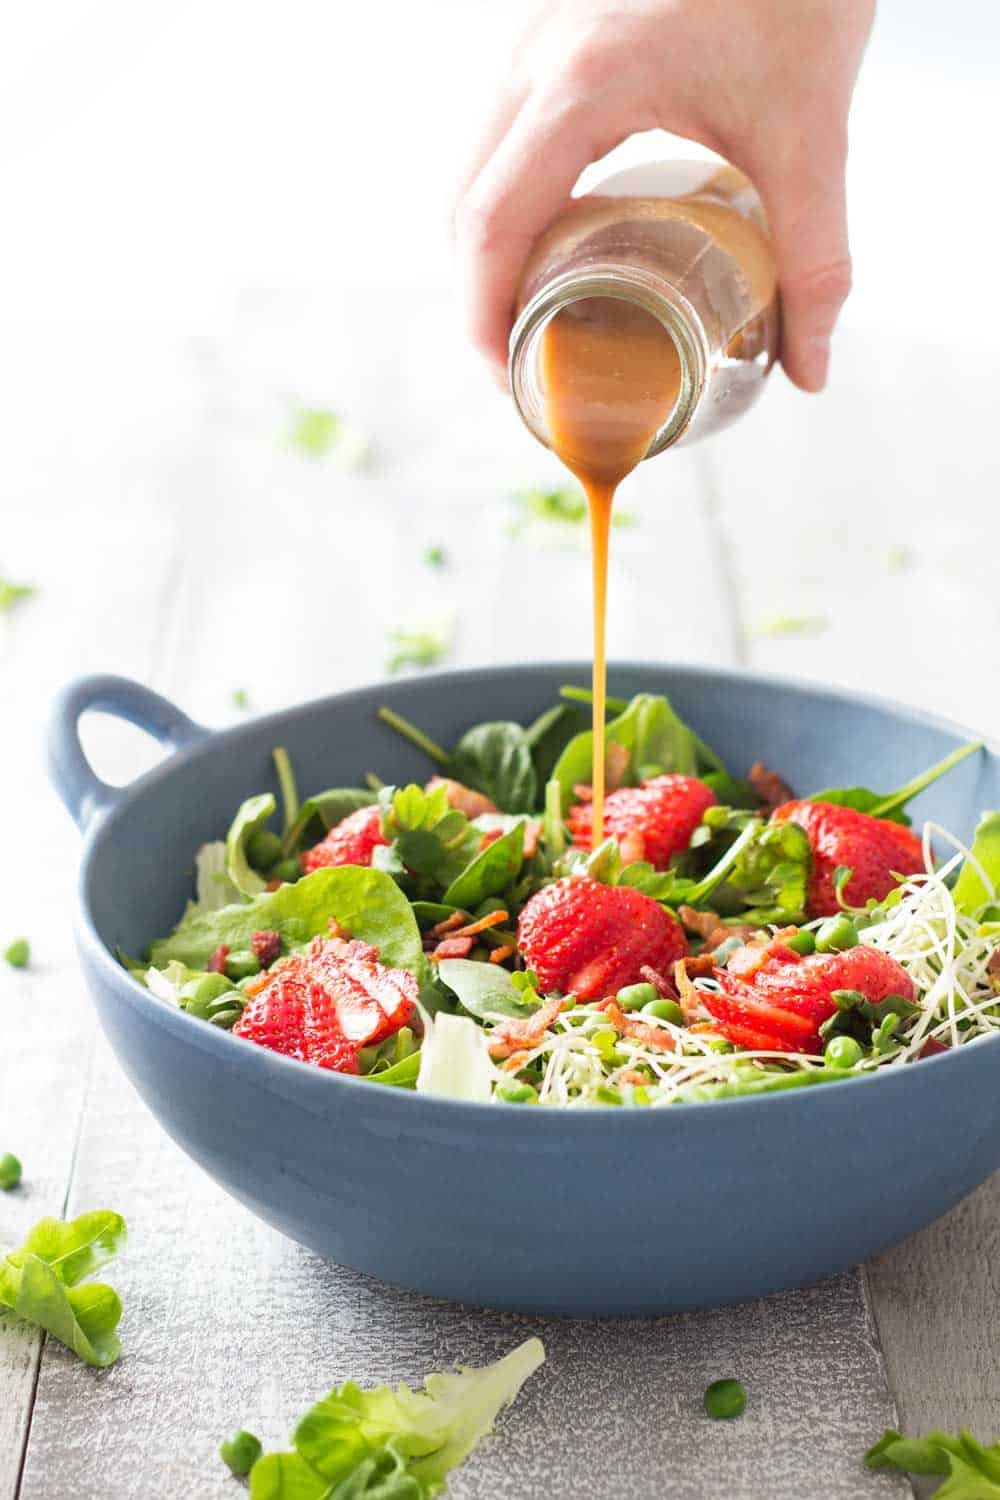 Hand pouring Maple Mustard Balsamic Dressing over Strawberry Bacon Spring Salad in a blue bowl.